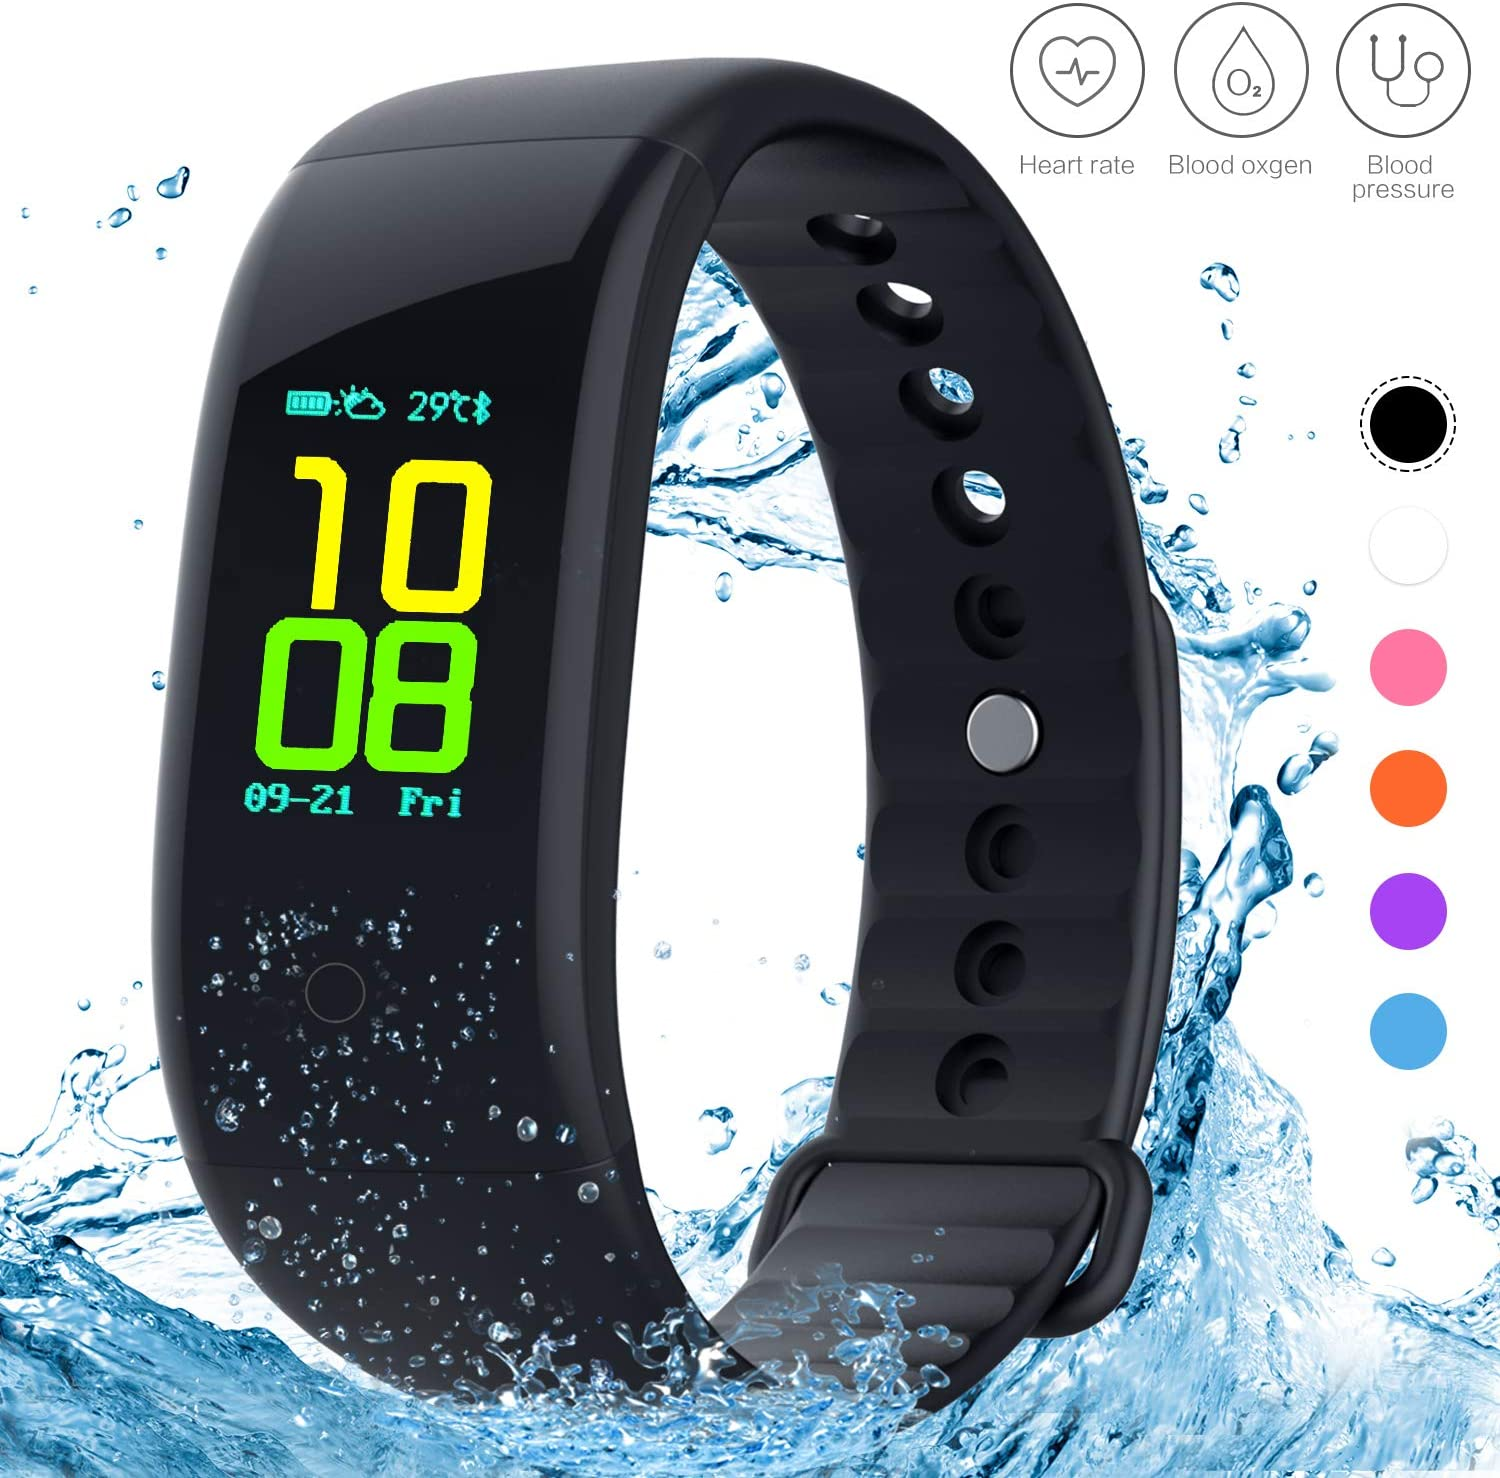 Yeartown Fitness Tracker, Activity Tracker OLED Color Screen Watch Smart Wristband with Heart Rate Test, IP67 Waterproof Sports Bracelet with Steps, Mileage Trails, Calorie Sleep Monitoring etc